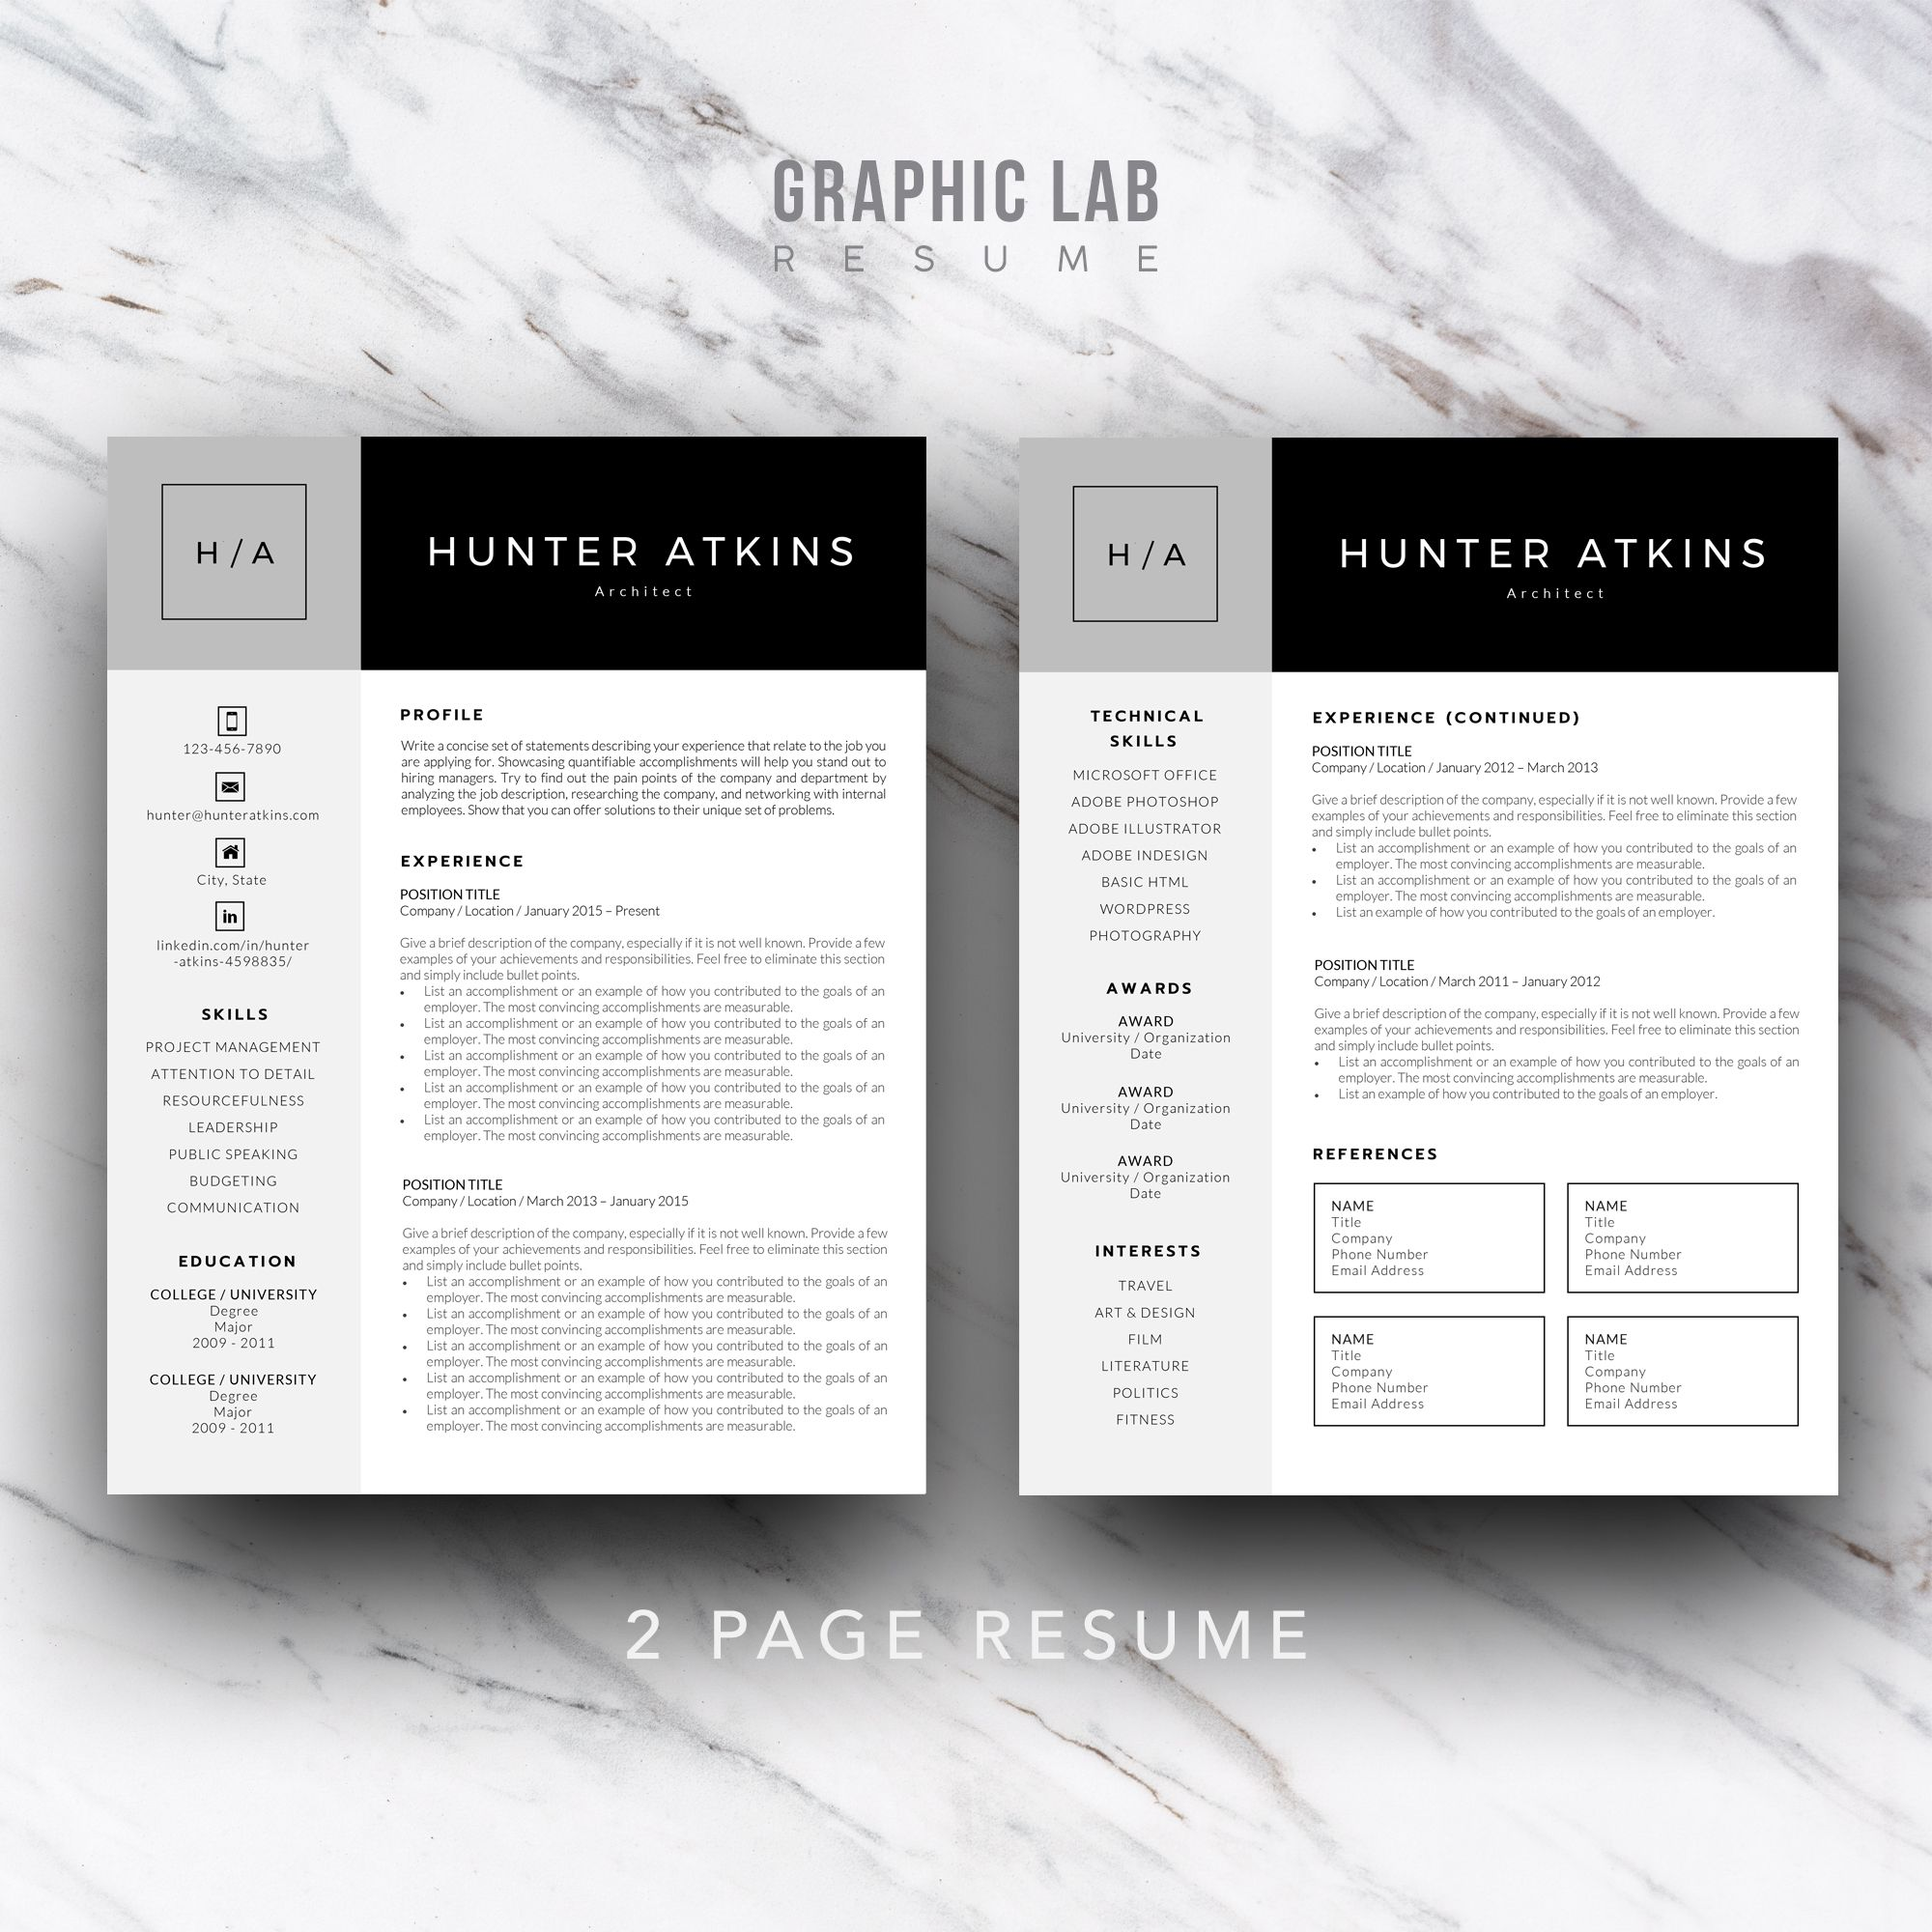 Resume Template One Page Curriculum Vitae One Page Resume